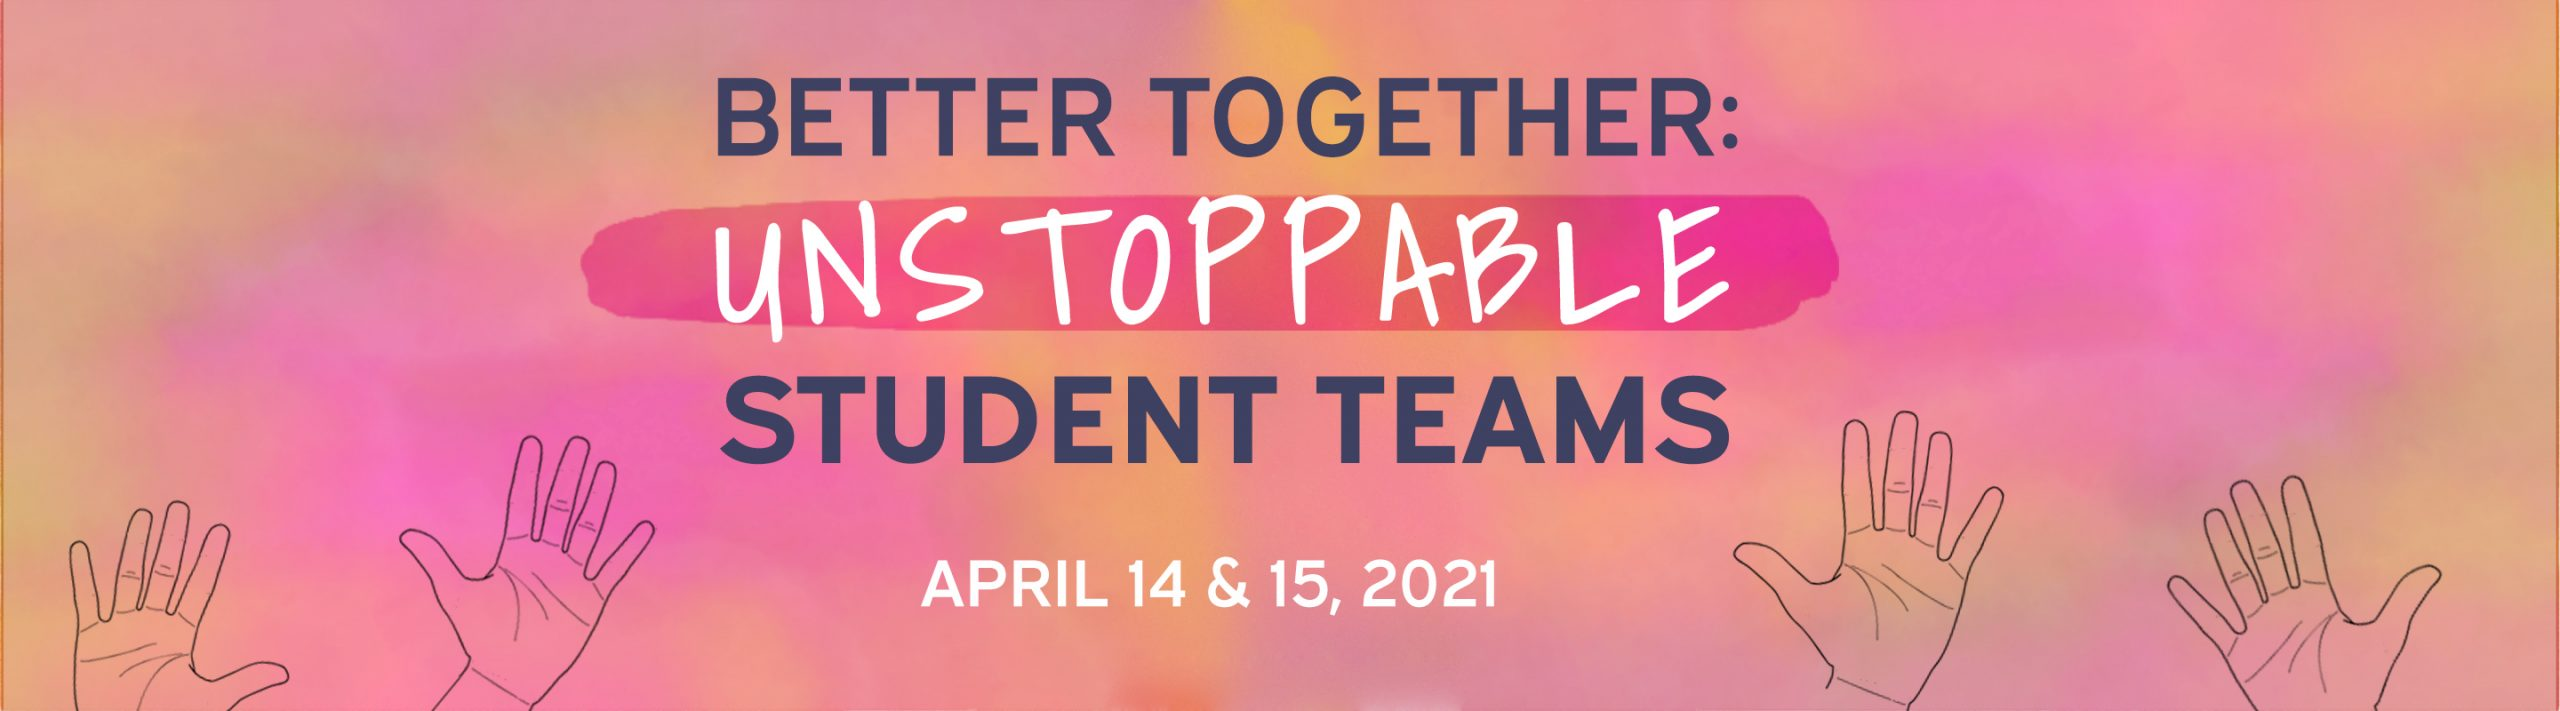 Better Together: Unstoppable Student Teams. April 14 & 15, 2021